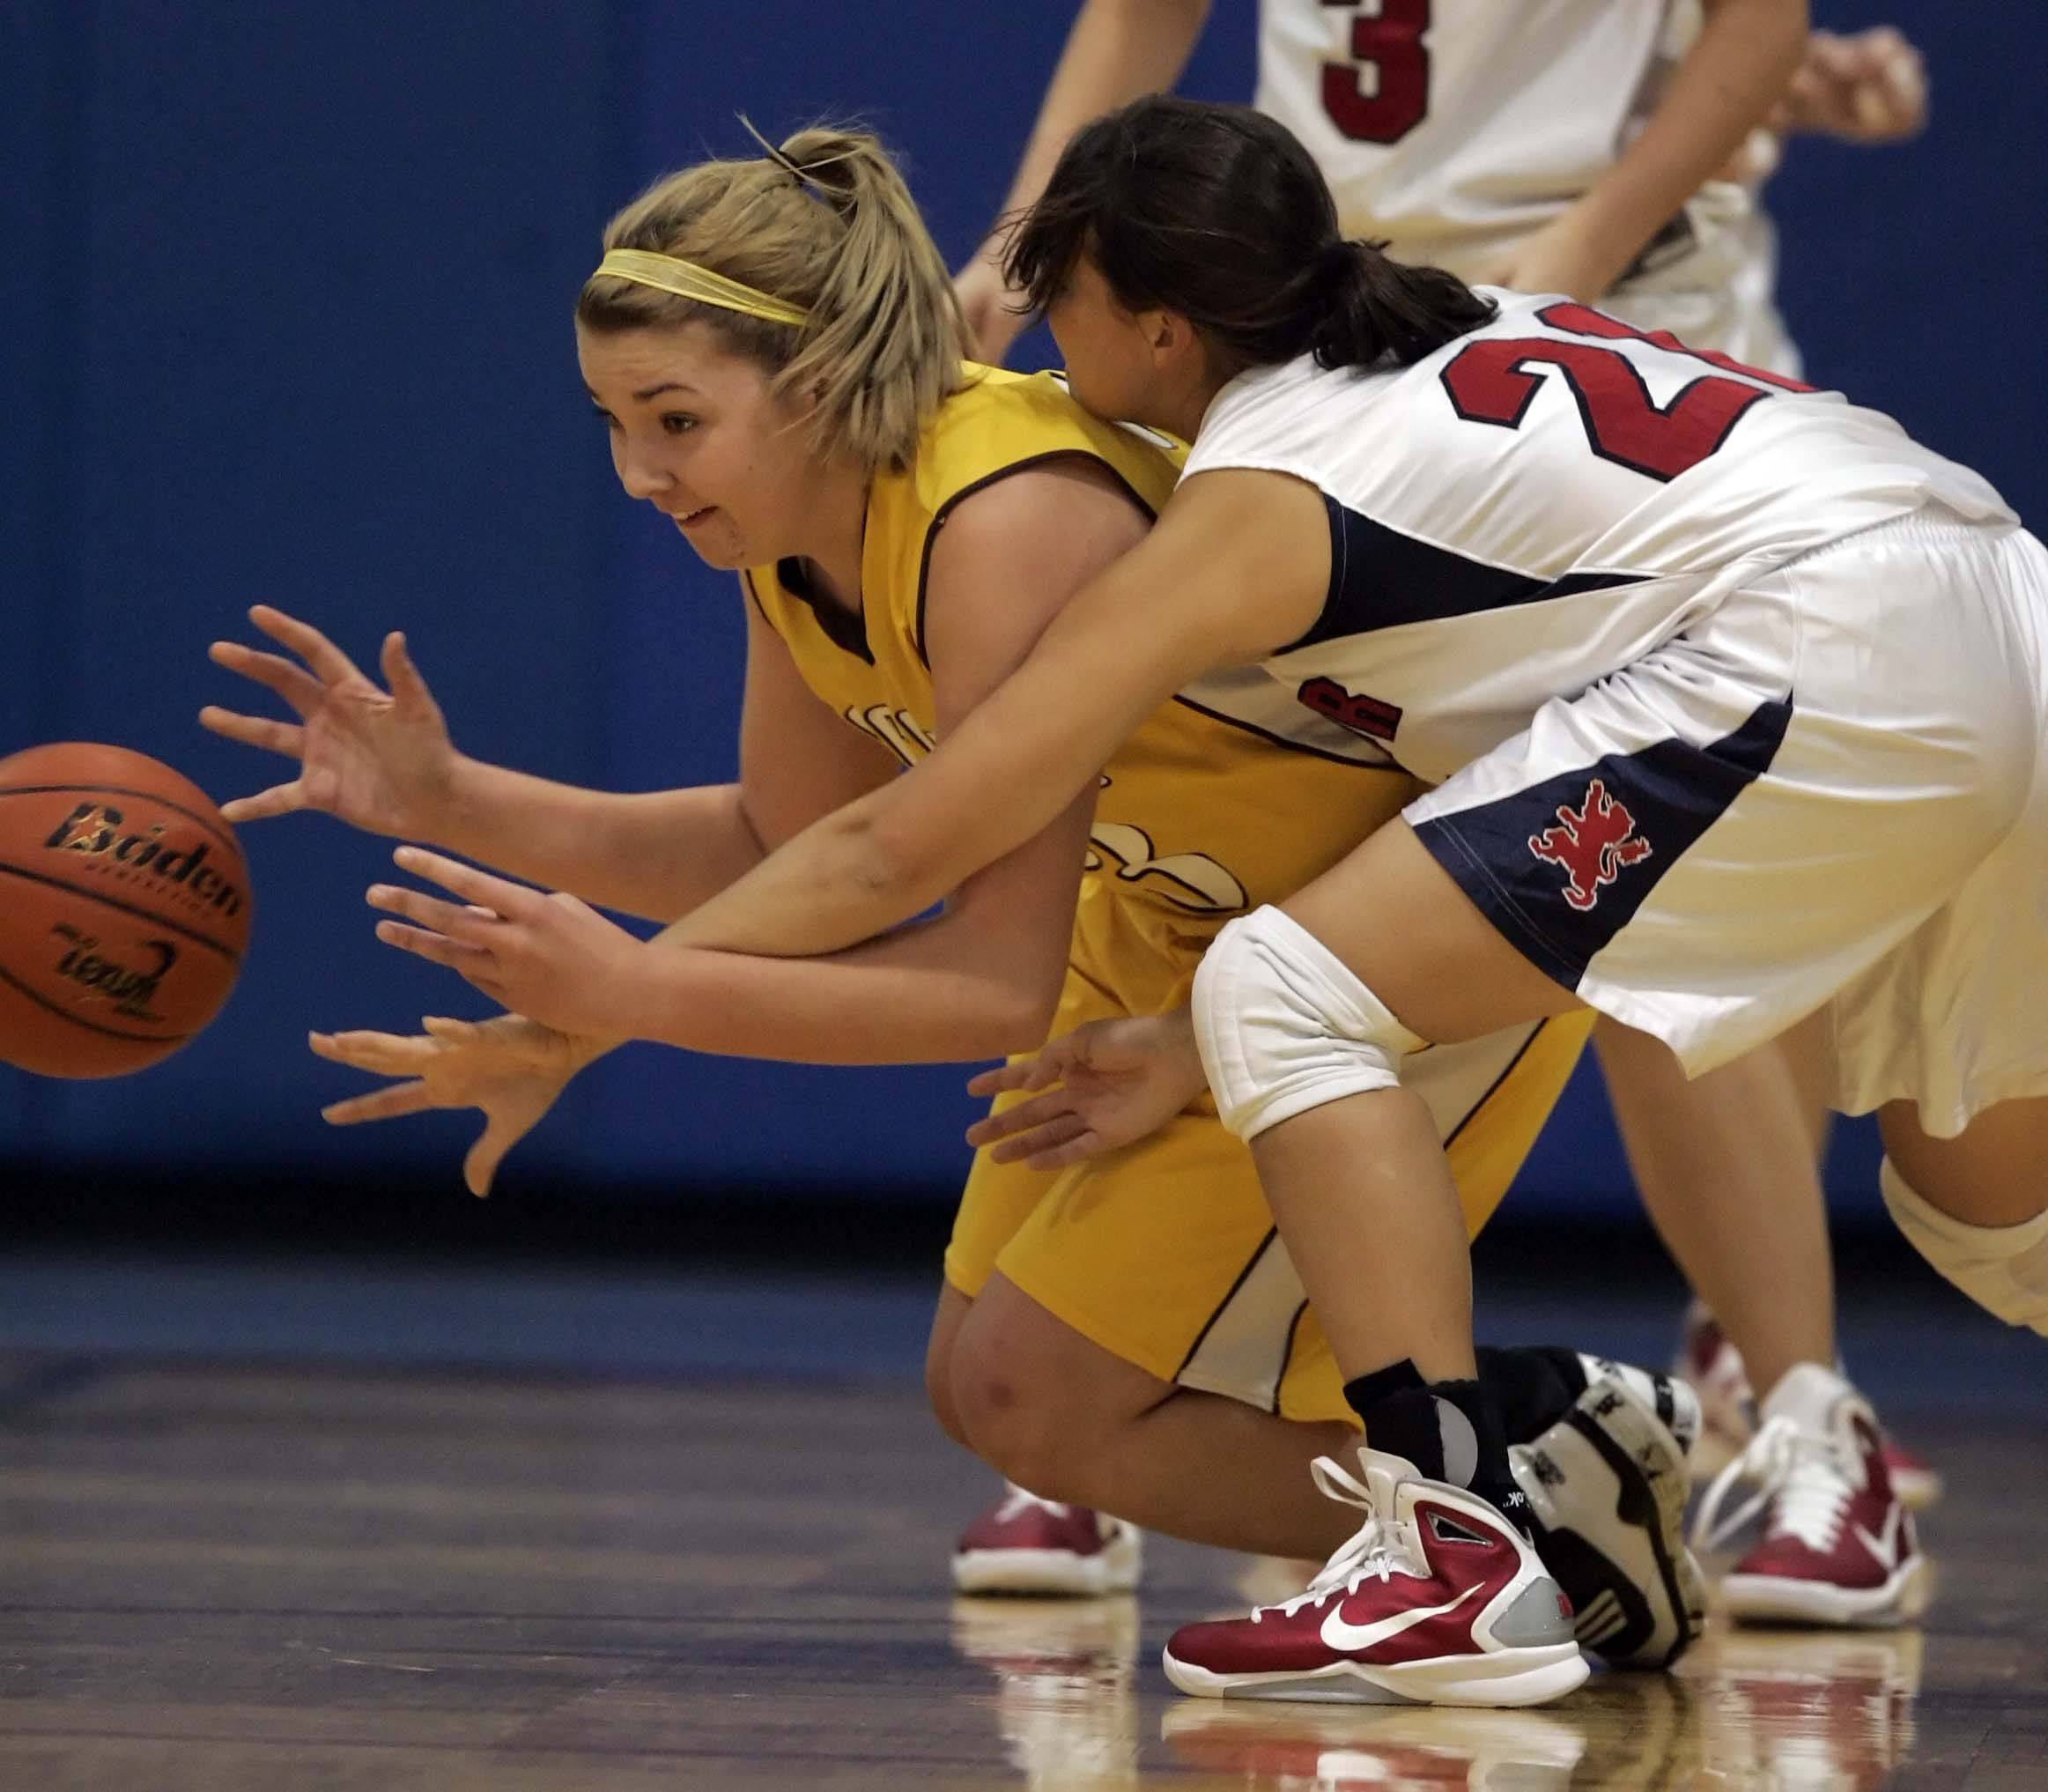 Jacobs' Melanie Schwerdtmann, 23, and St. Viator's St. Viator guard Katie Calmeyn, 21, battle for a loose ball Friday at the Dundee-Crown tournament.